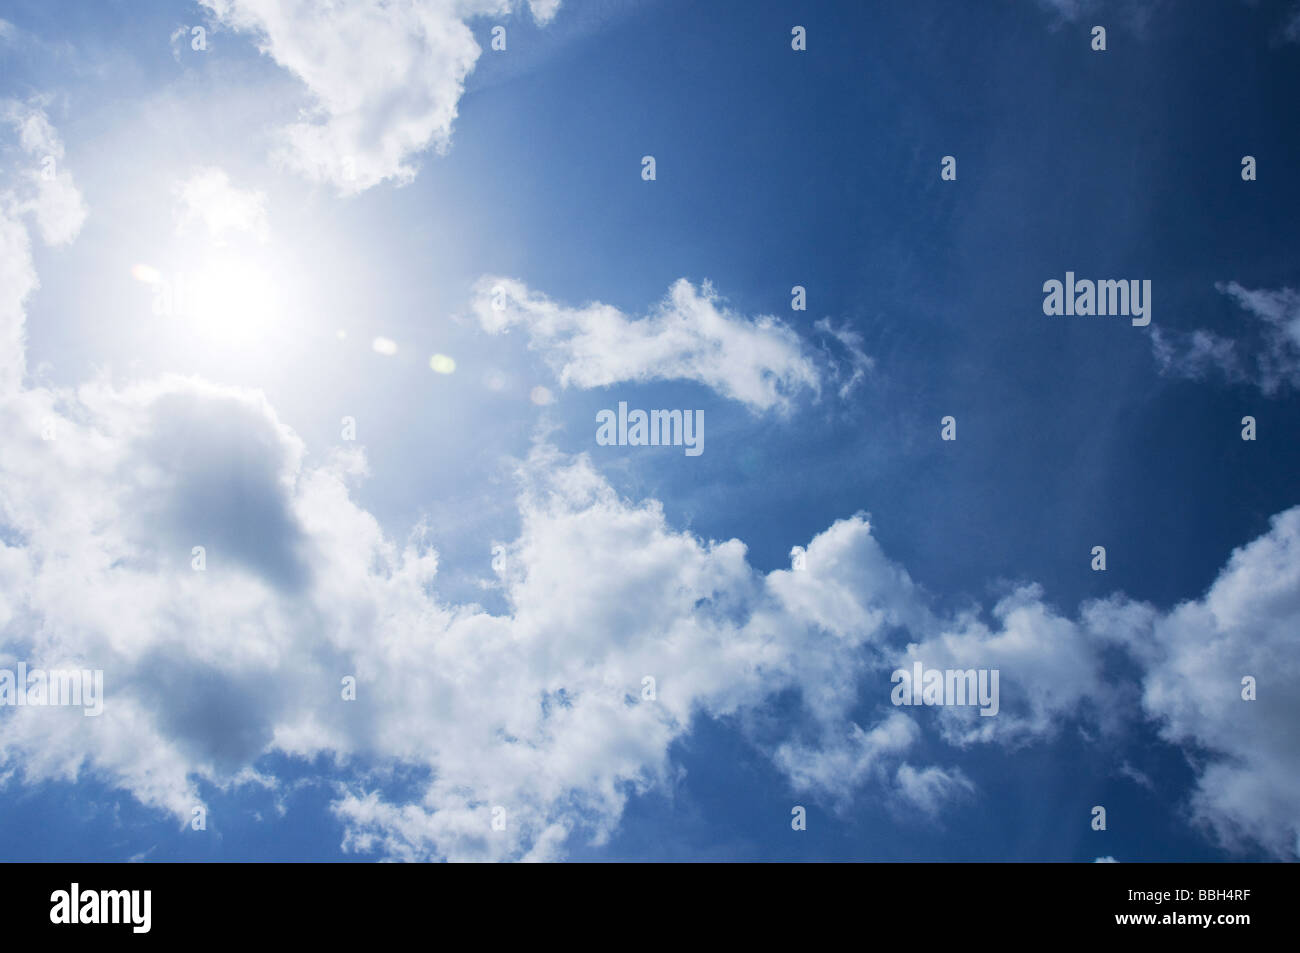 Looking at sun during the day against a blue and cloudy sky - Stock Image